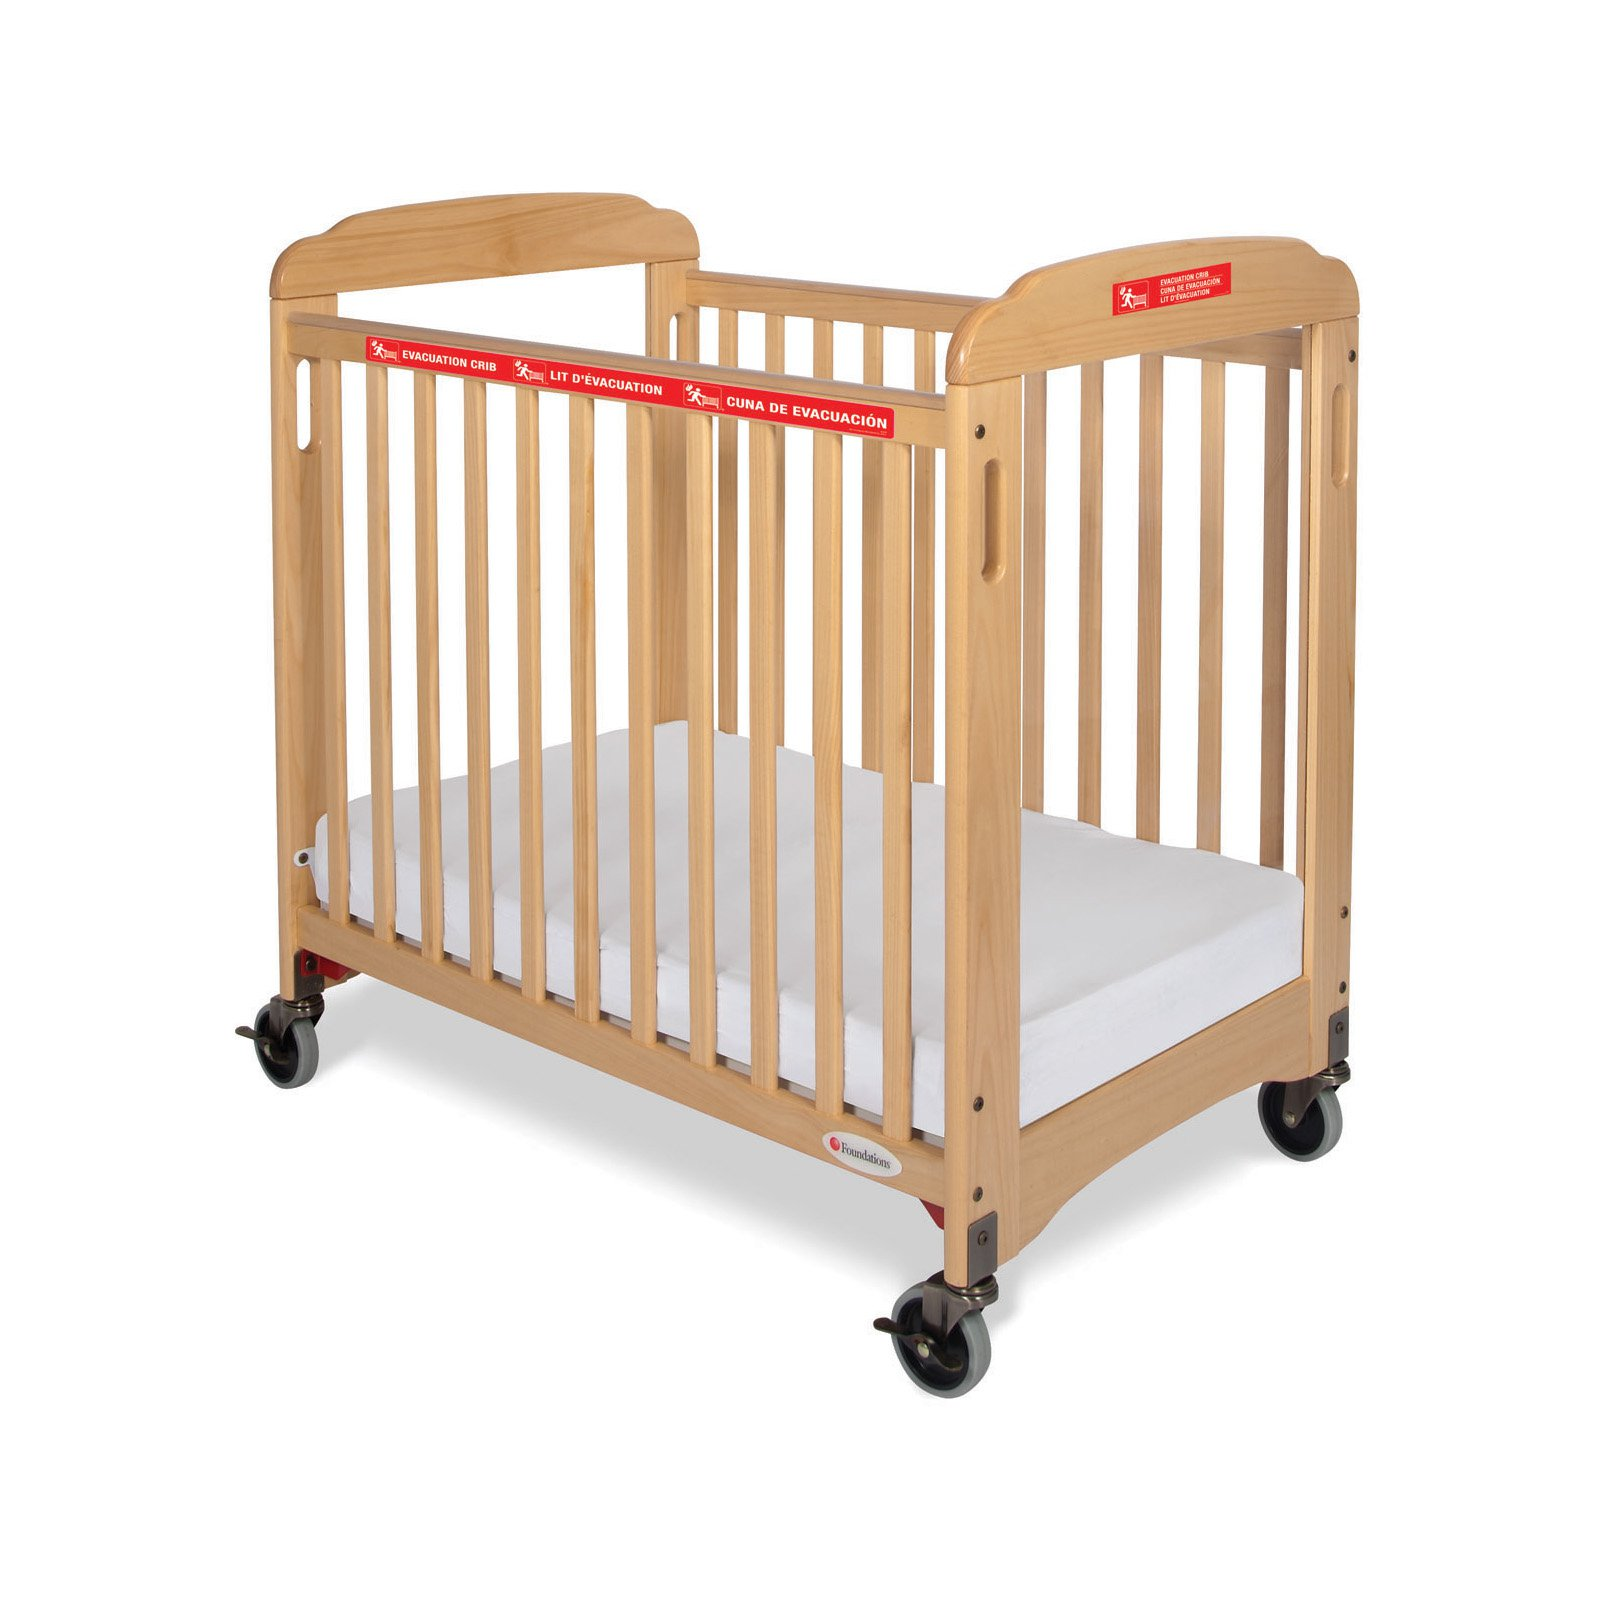 Foundations First Responder Evacuation Clearview Compact Crib with Evacuation Frame